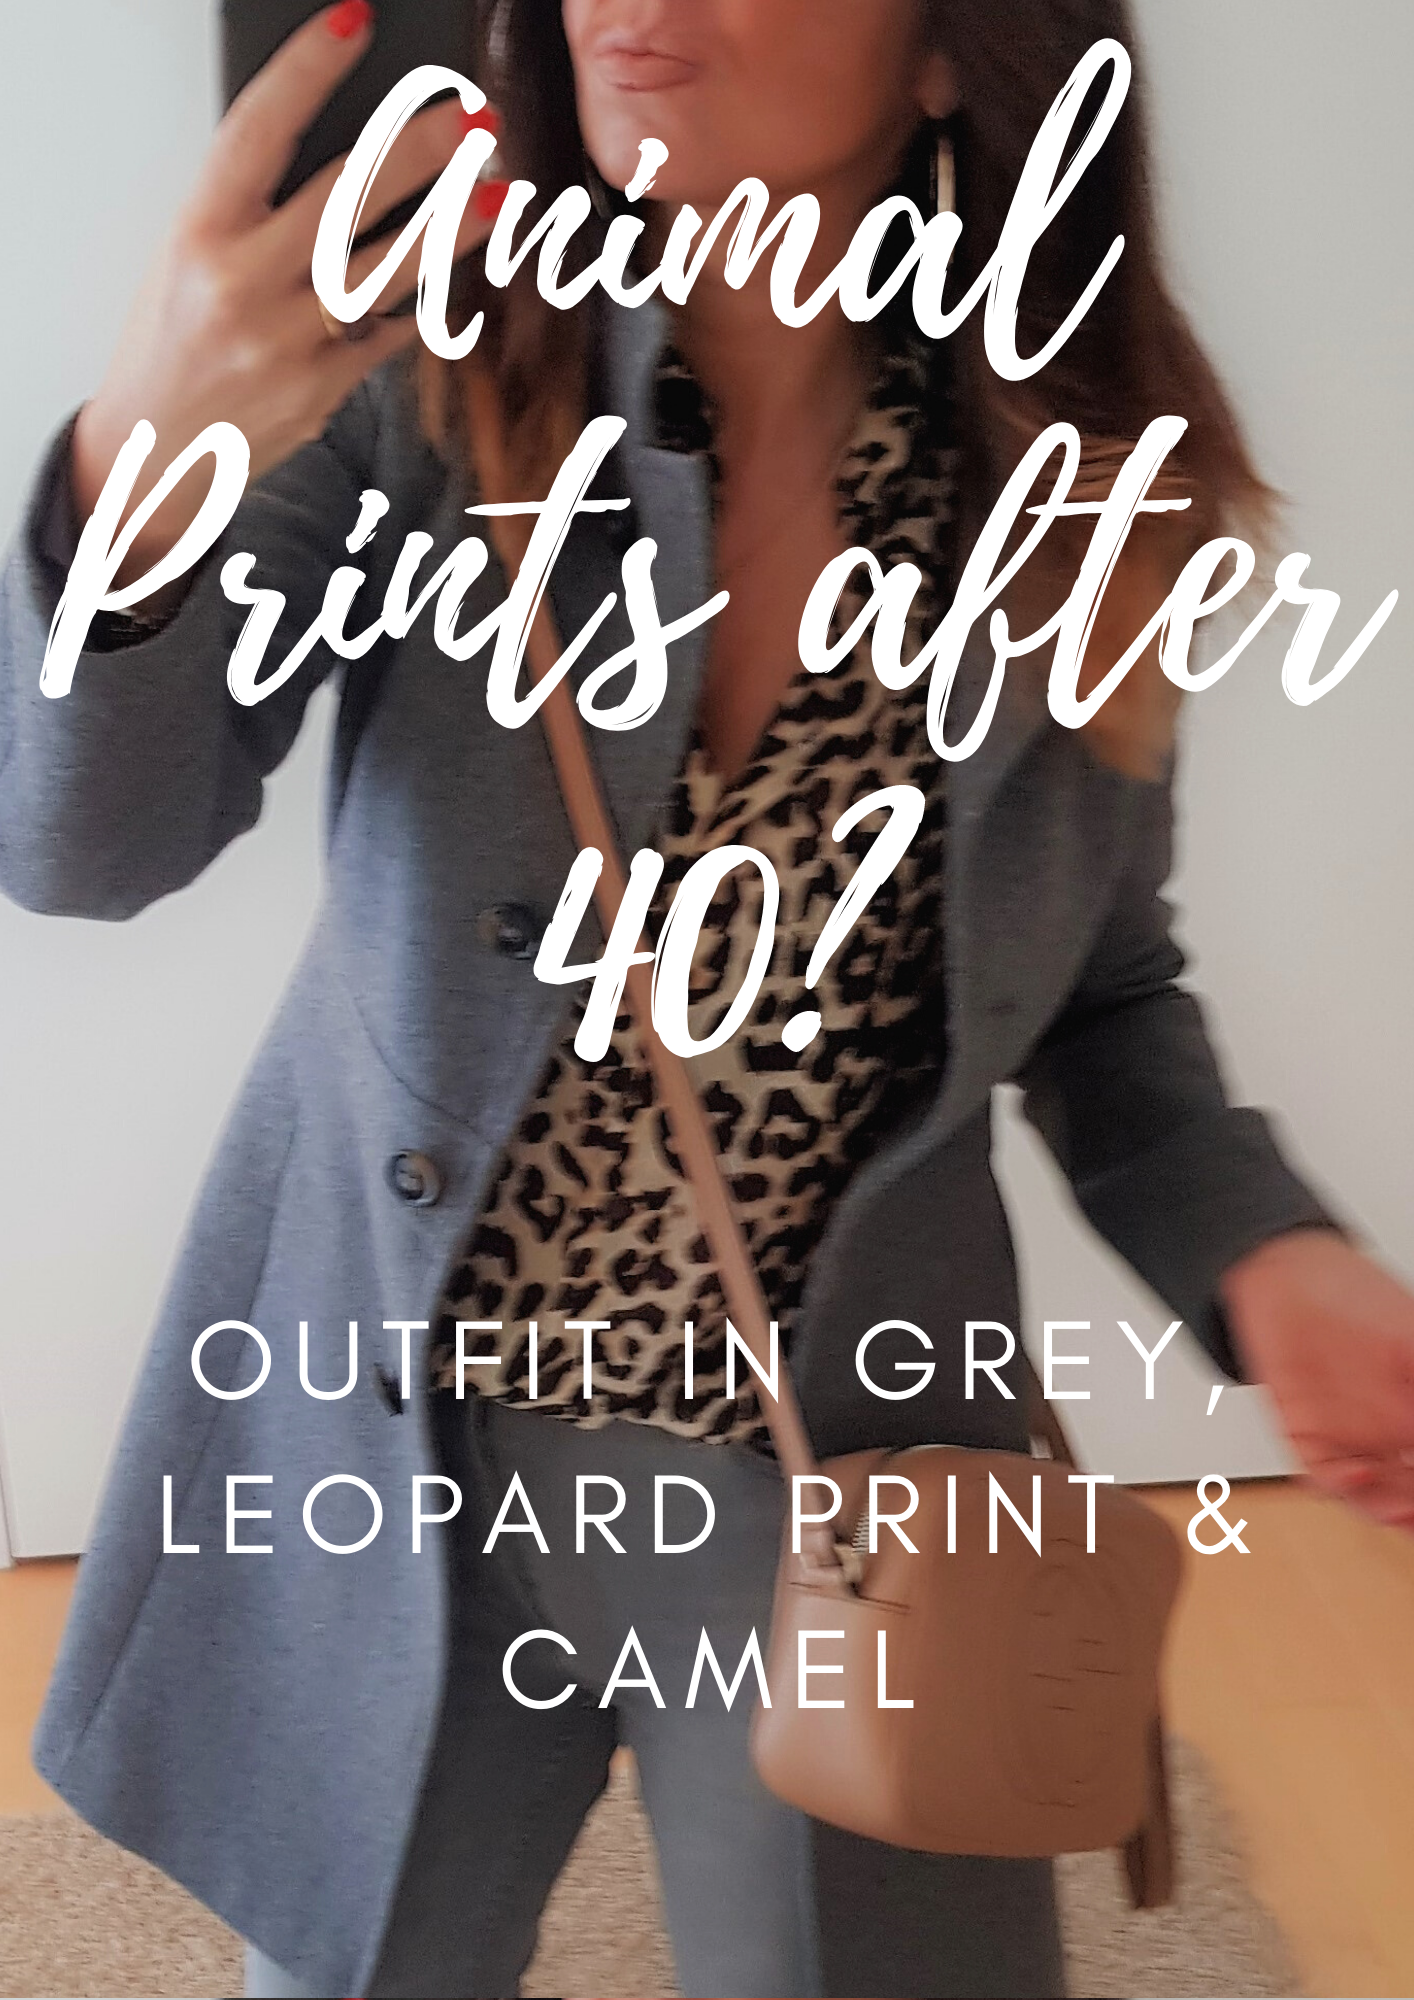 How to wear animal print over 40: Grey and leopard print